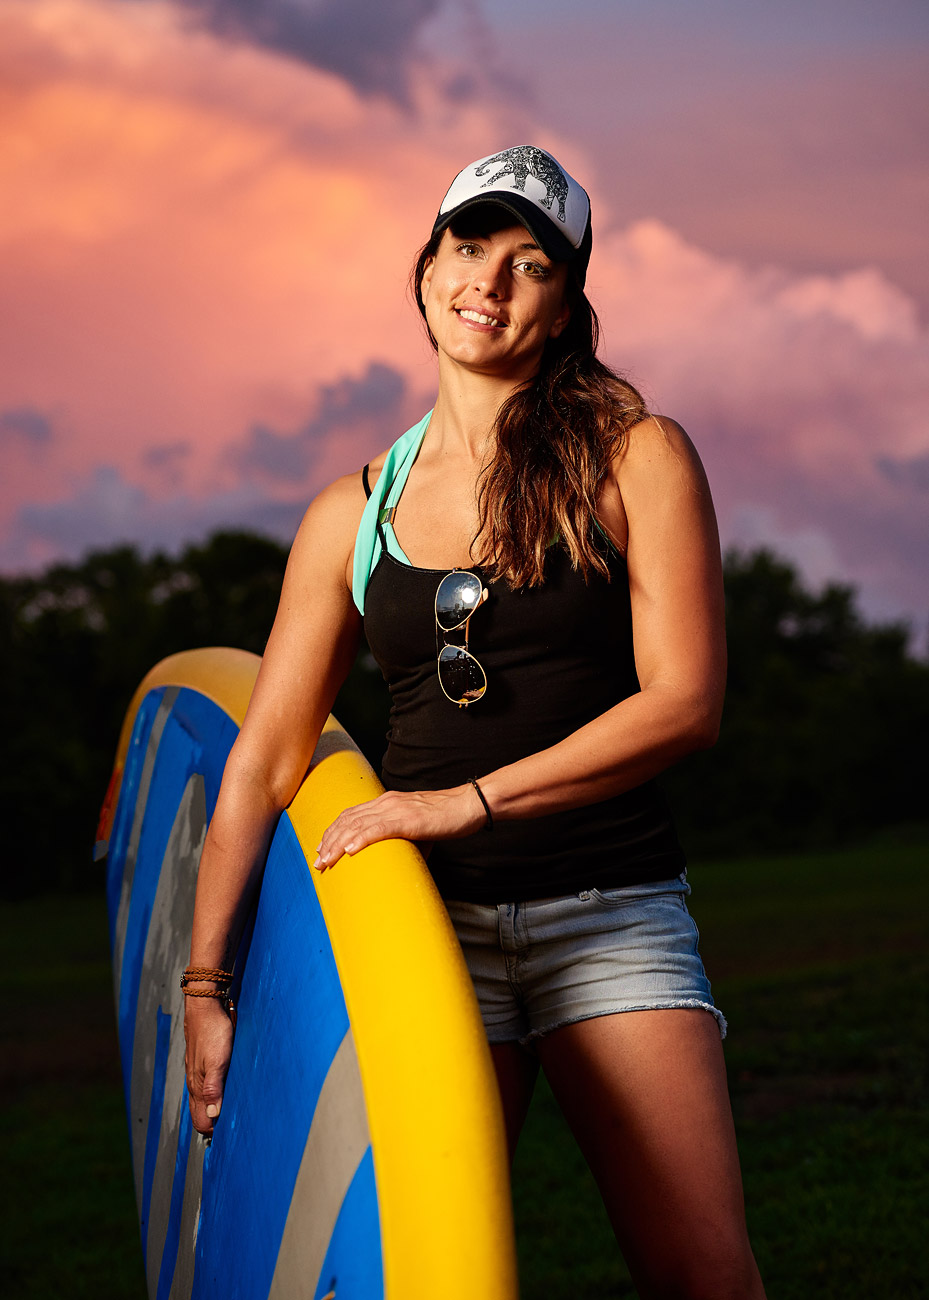 Standup_Paddle_Board_Portrait